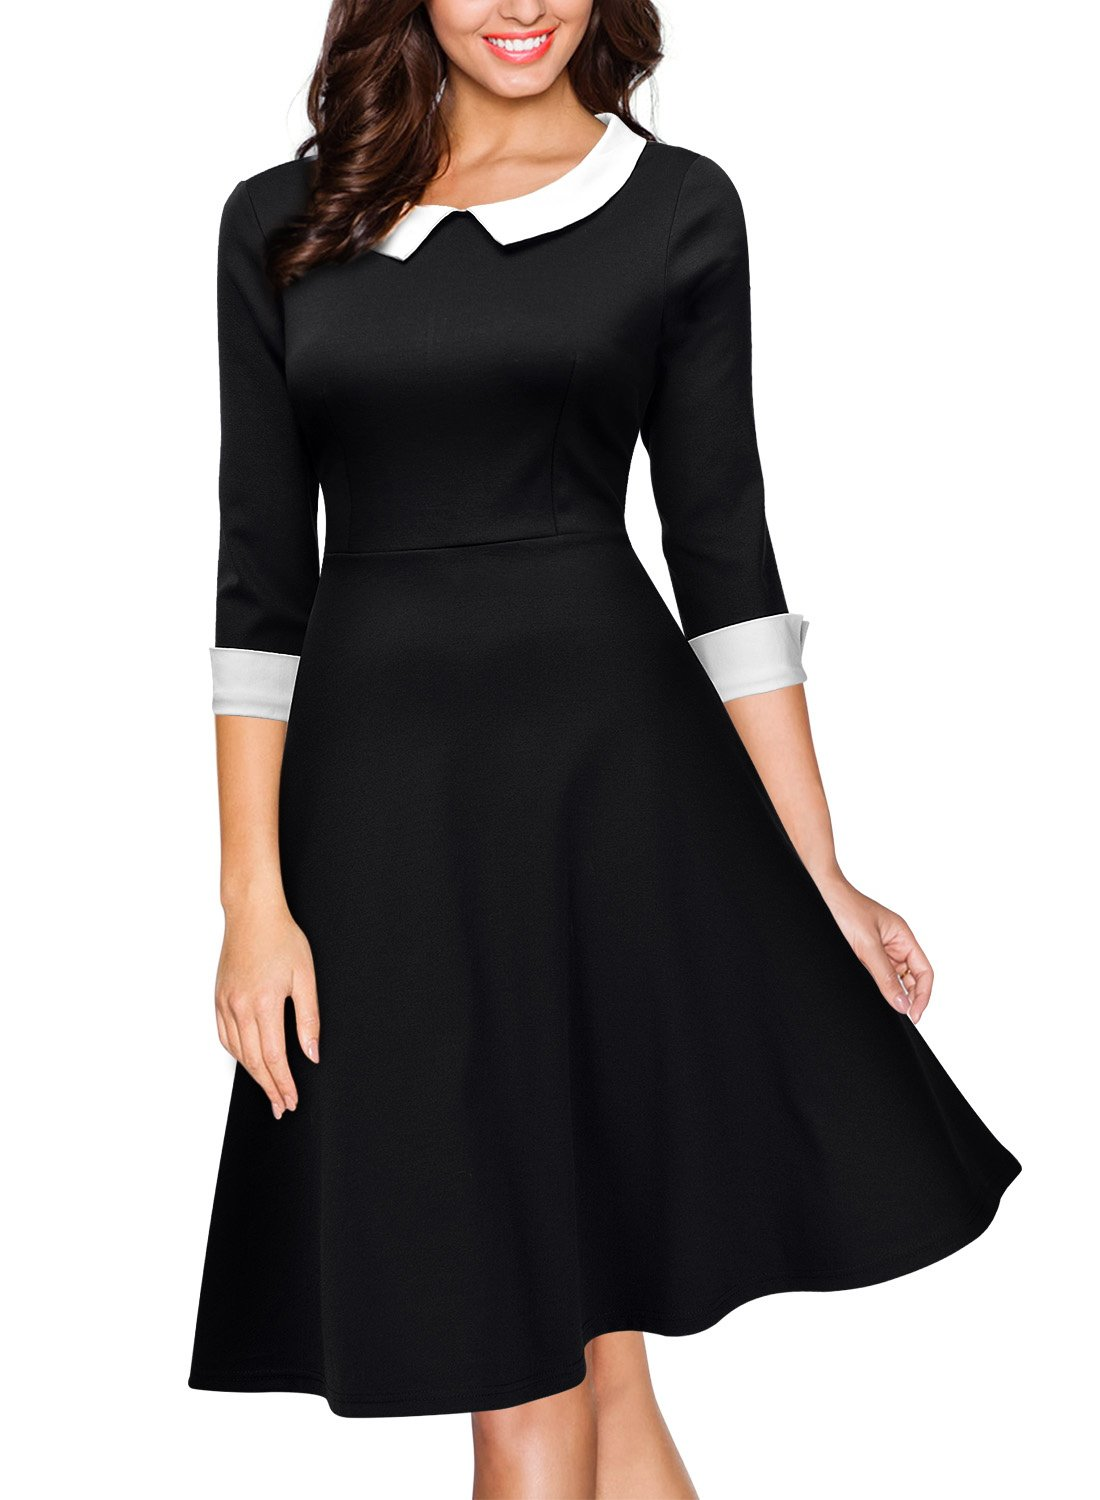 Miusol Women's Formal Polo Neck Navy Style Party Swing Dress,Black,Small